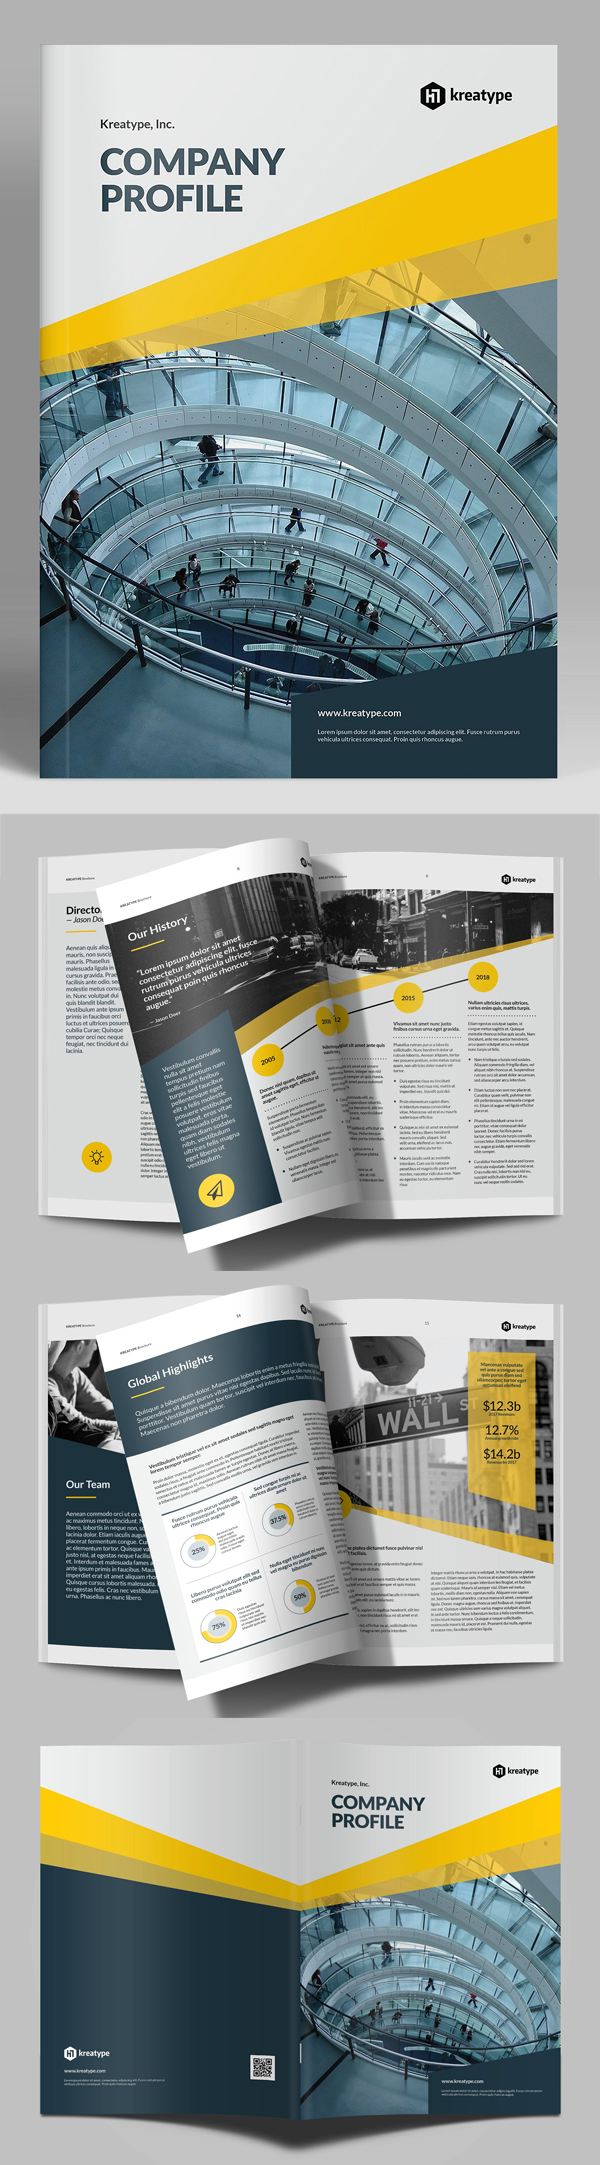 100 Professional Corporate Brochure Templates - 63